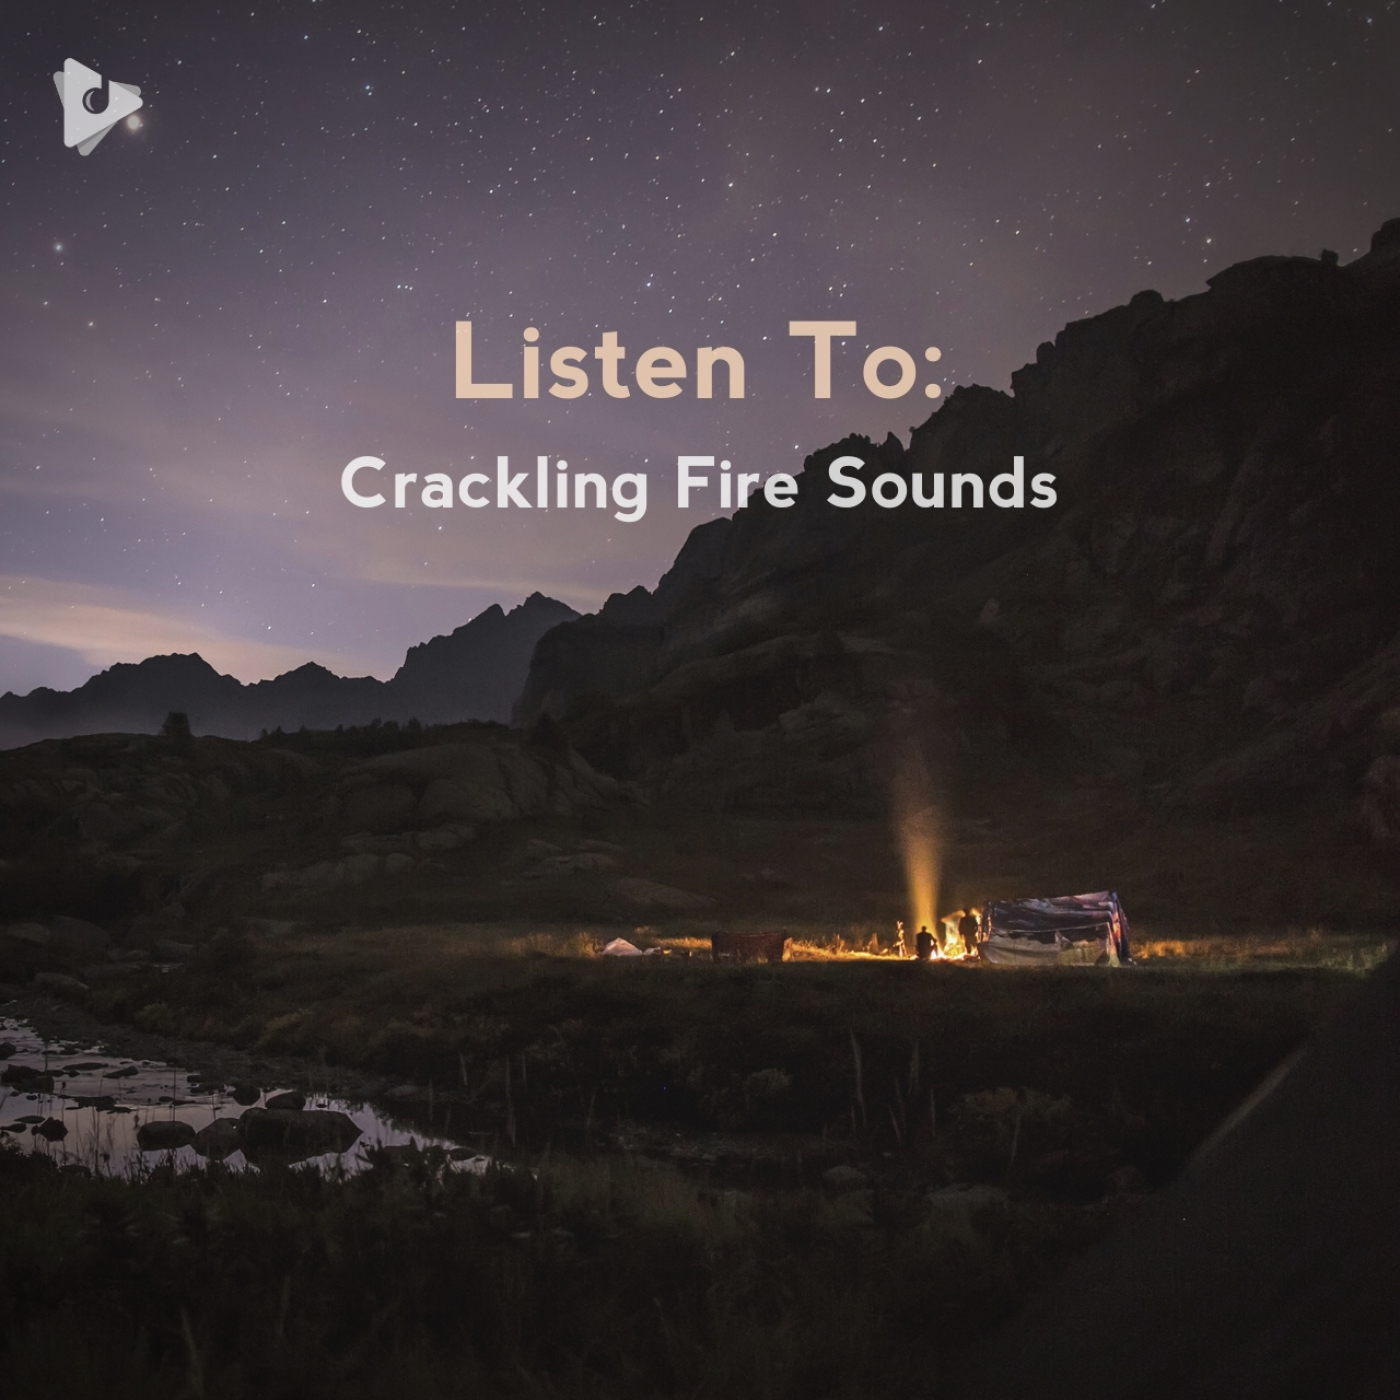 Listen To: Crackling Fire Sounds